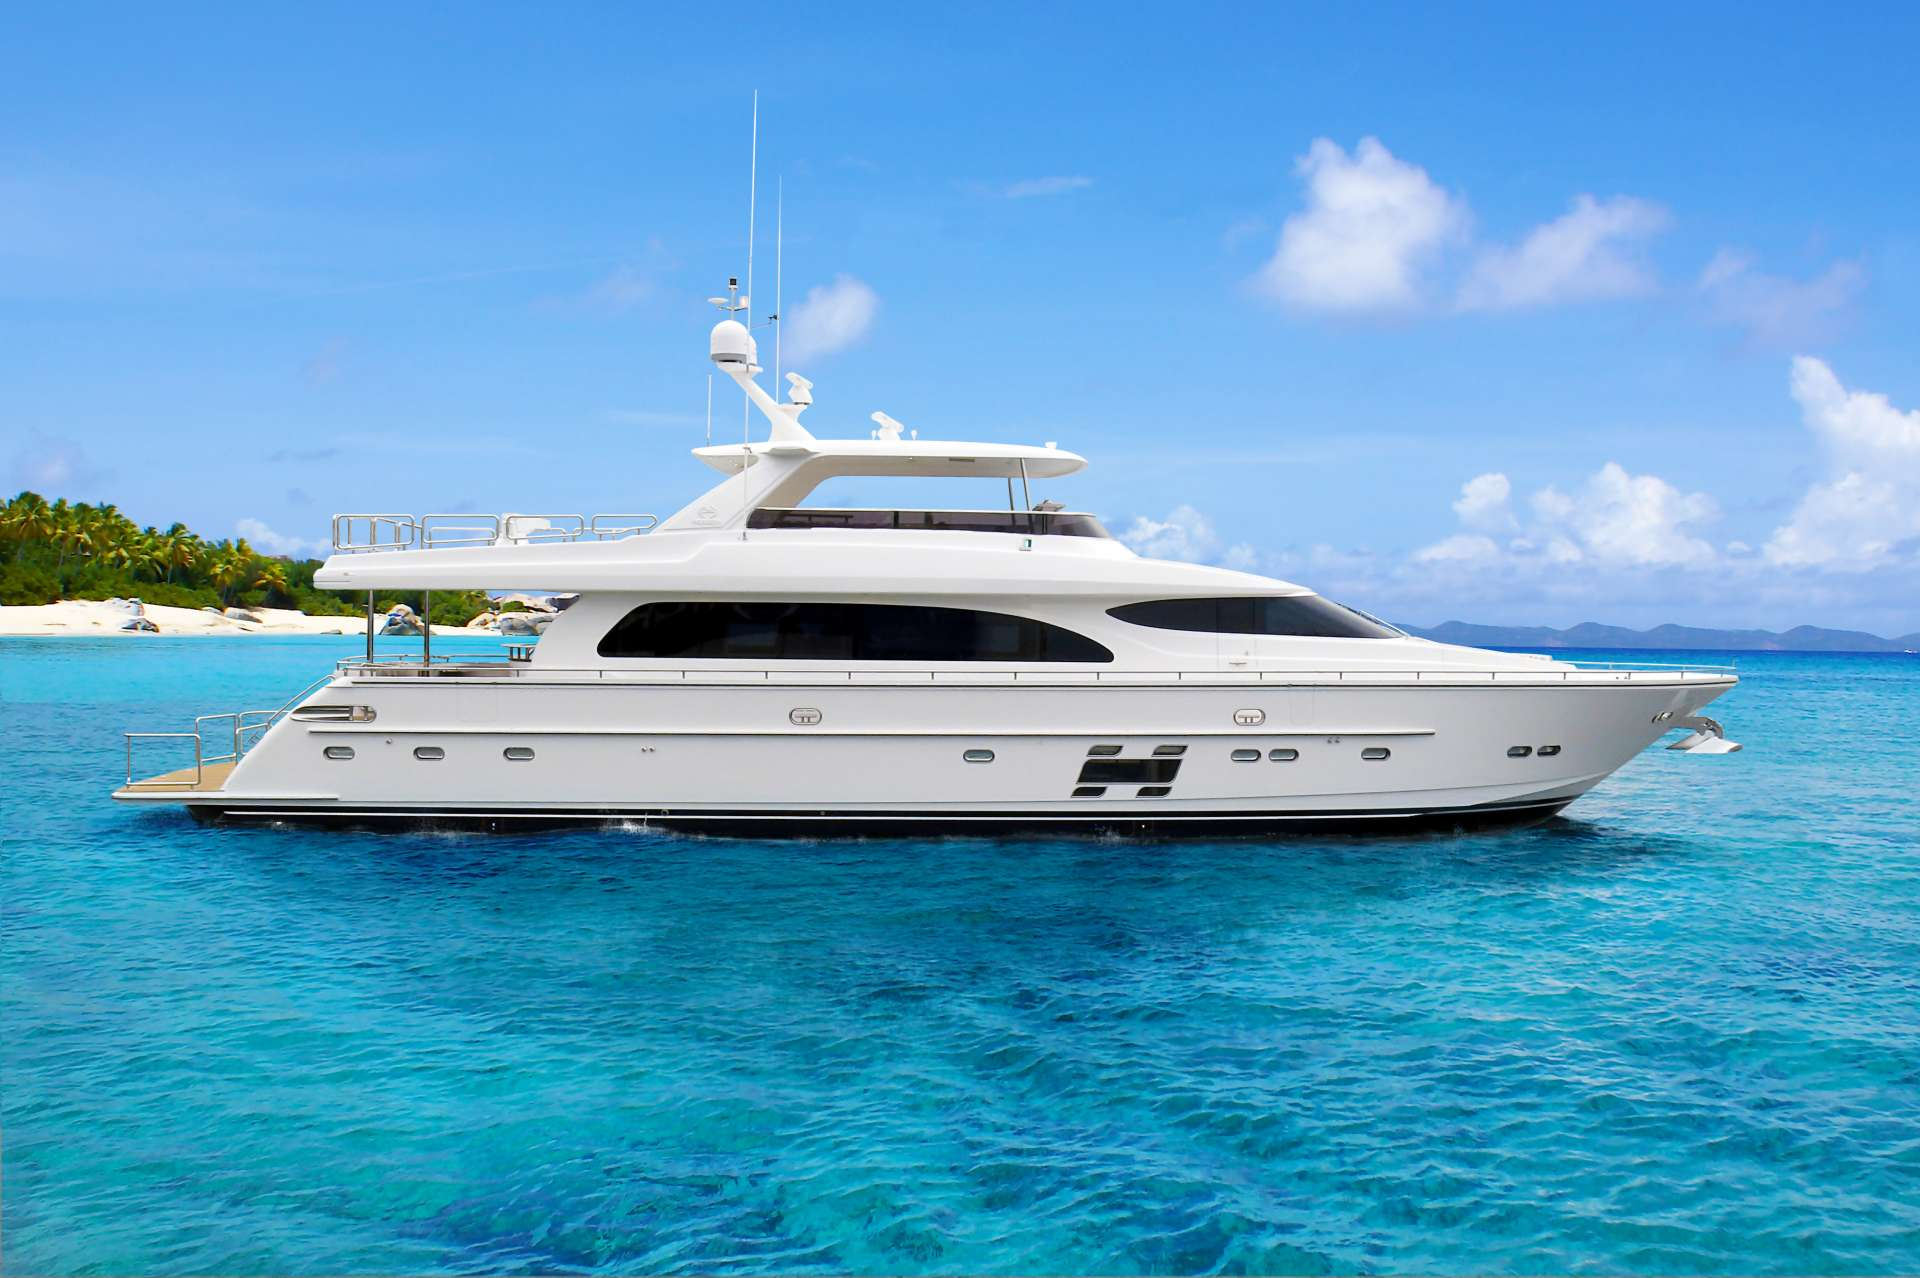 Aqua Motor Yacht - yacht for rent in dubai